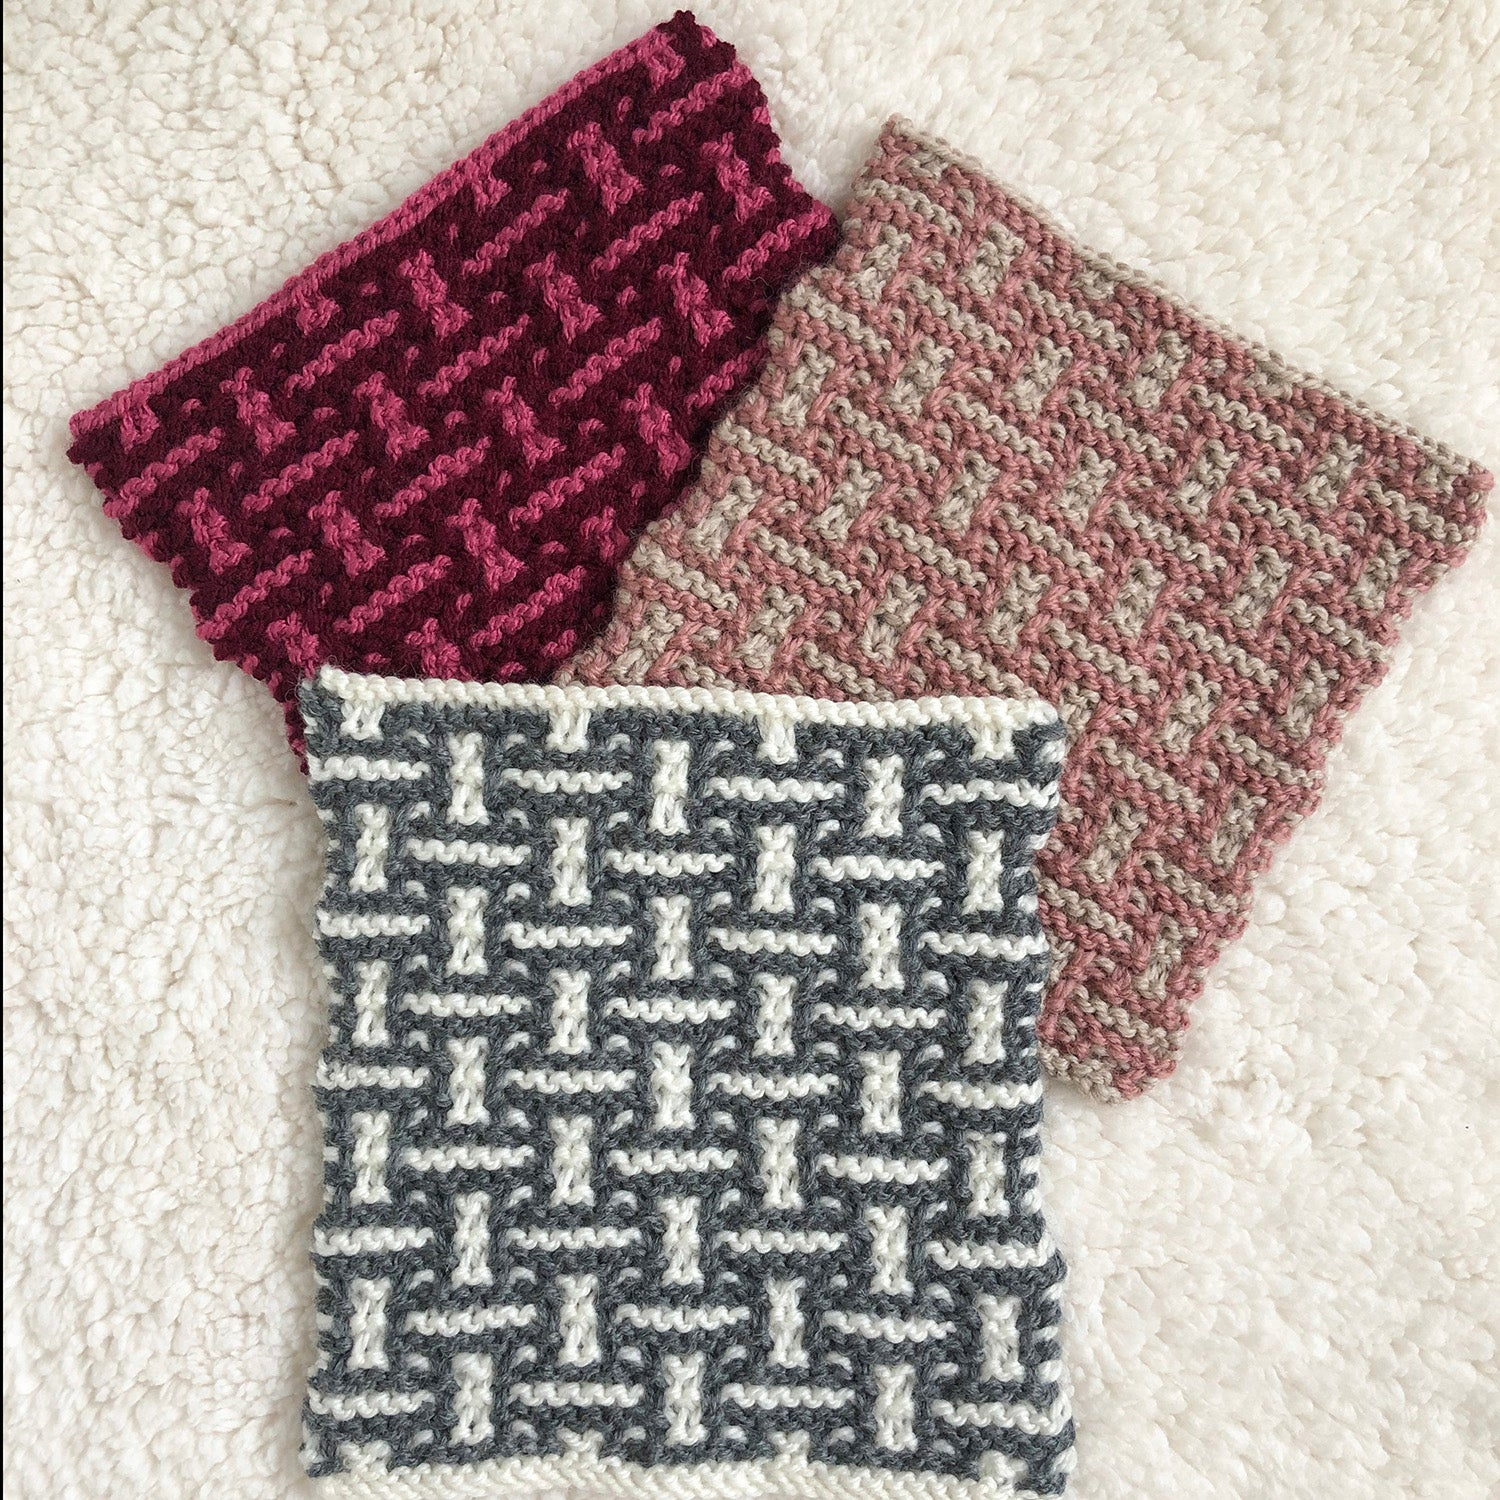 Week 2 New Lane - A Day Out Knit Along Blanket by Sarah Hatton - How to knit mosaic stitch